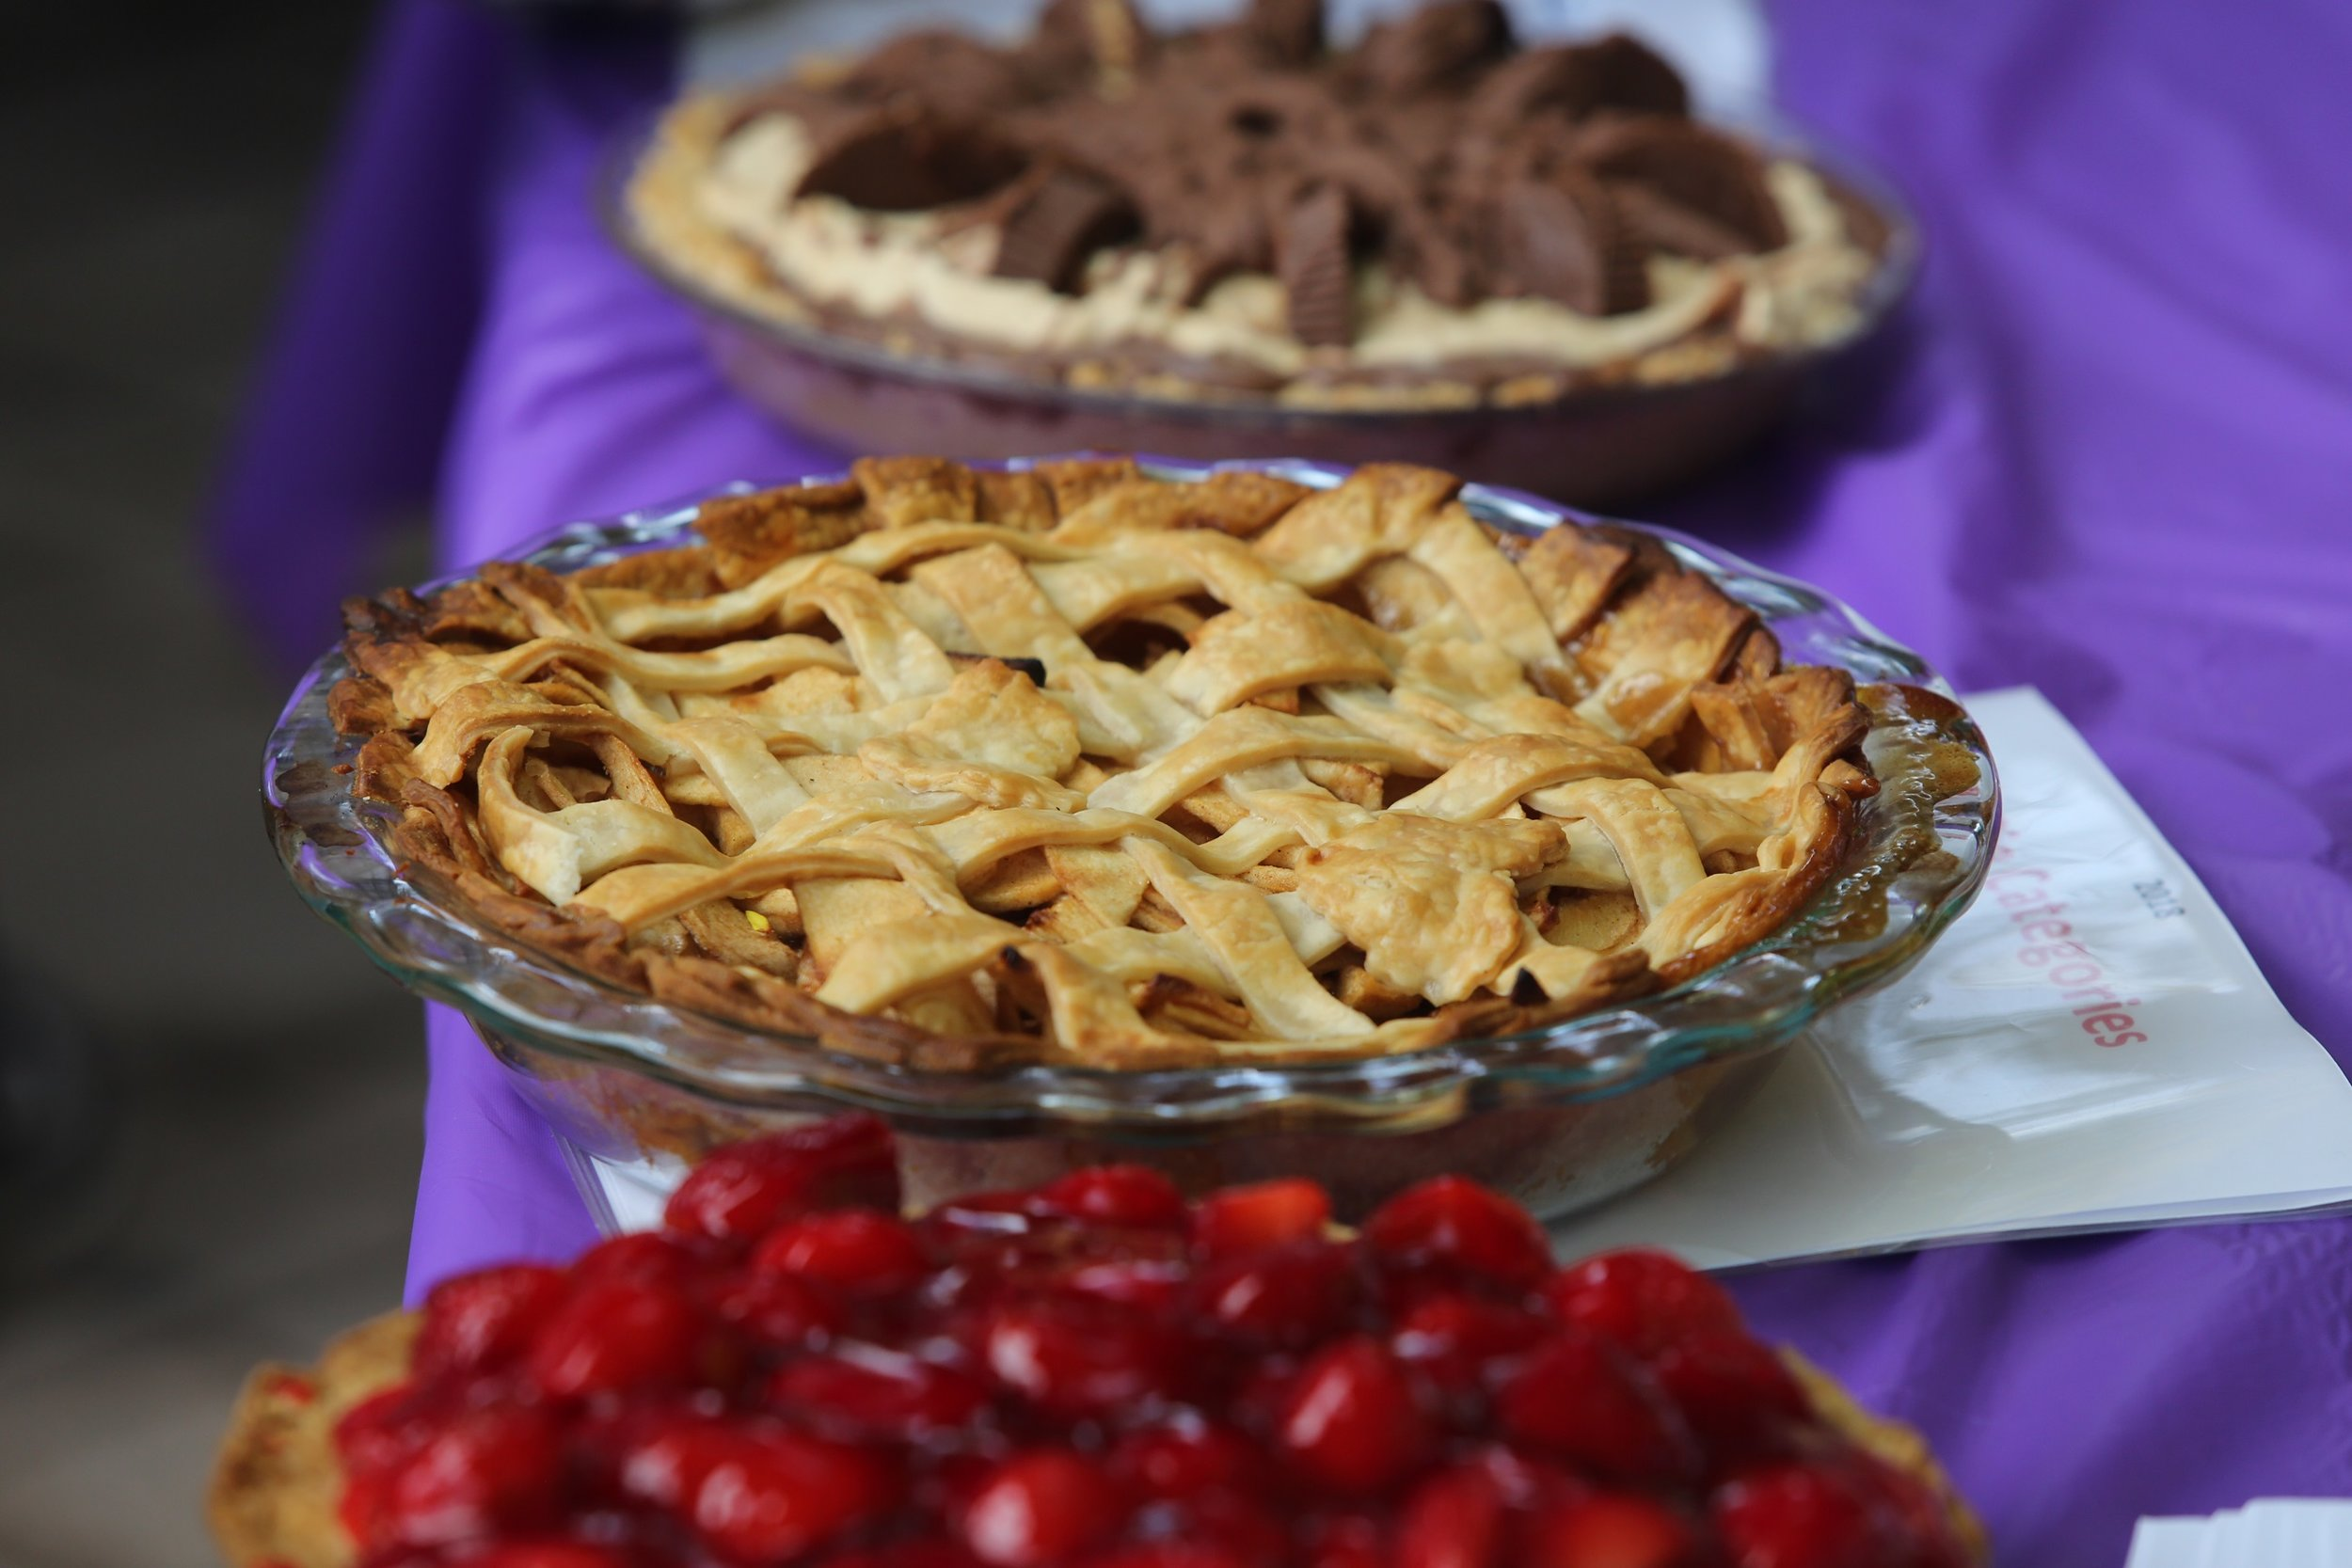 - • Community leaders judge the best pies in seven different categories.• Kids' Pies judged in three age groups!• Tickets purchased for pie slices or whole pies, food and beverage sales.• Listen to live music, let children enjoy the playground, find great deals on gift baskets and, of course, eat pie!